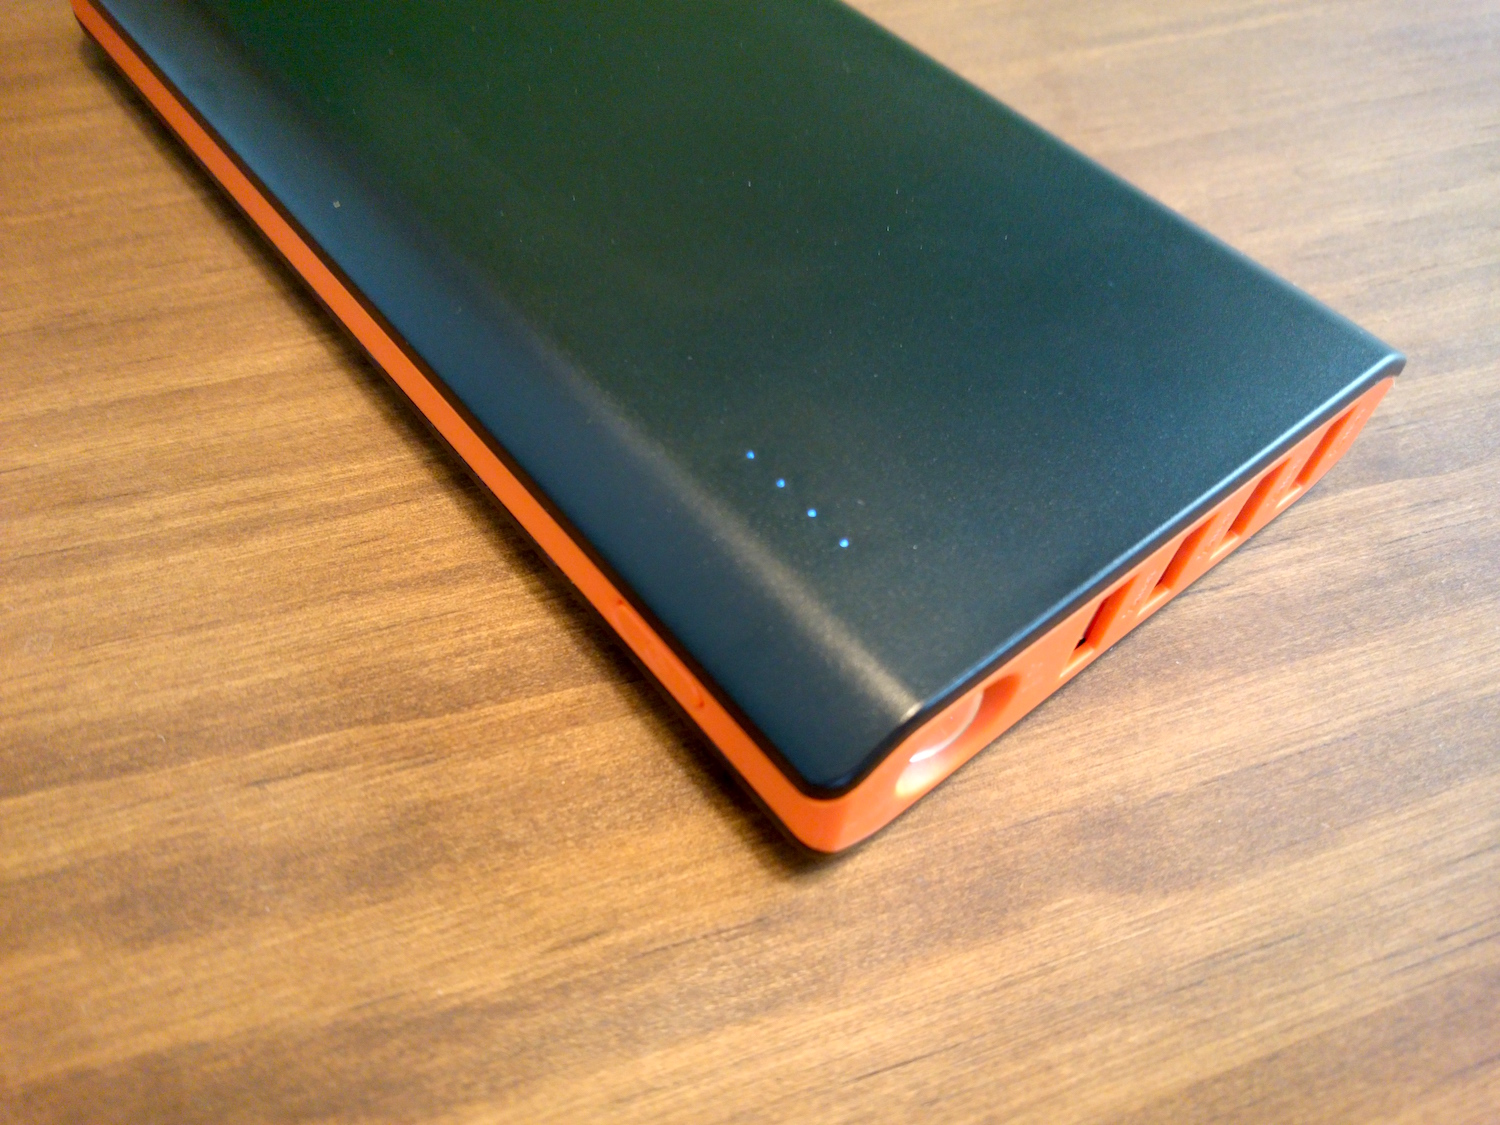 EasyAcc Monster 20000mAh Power Bank Testbericht